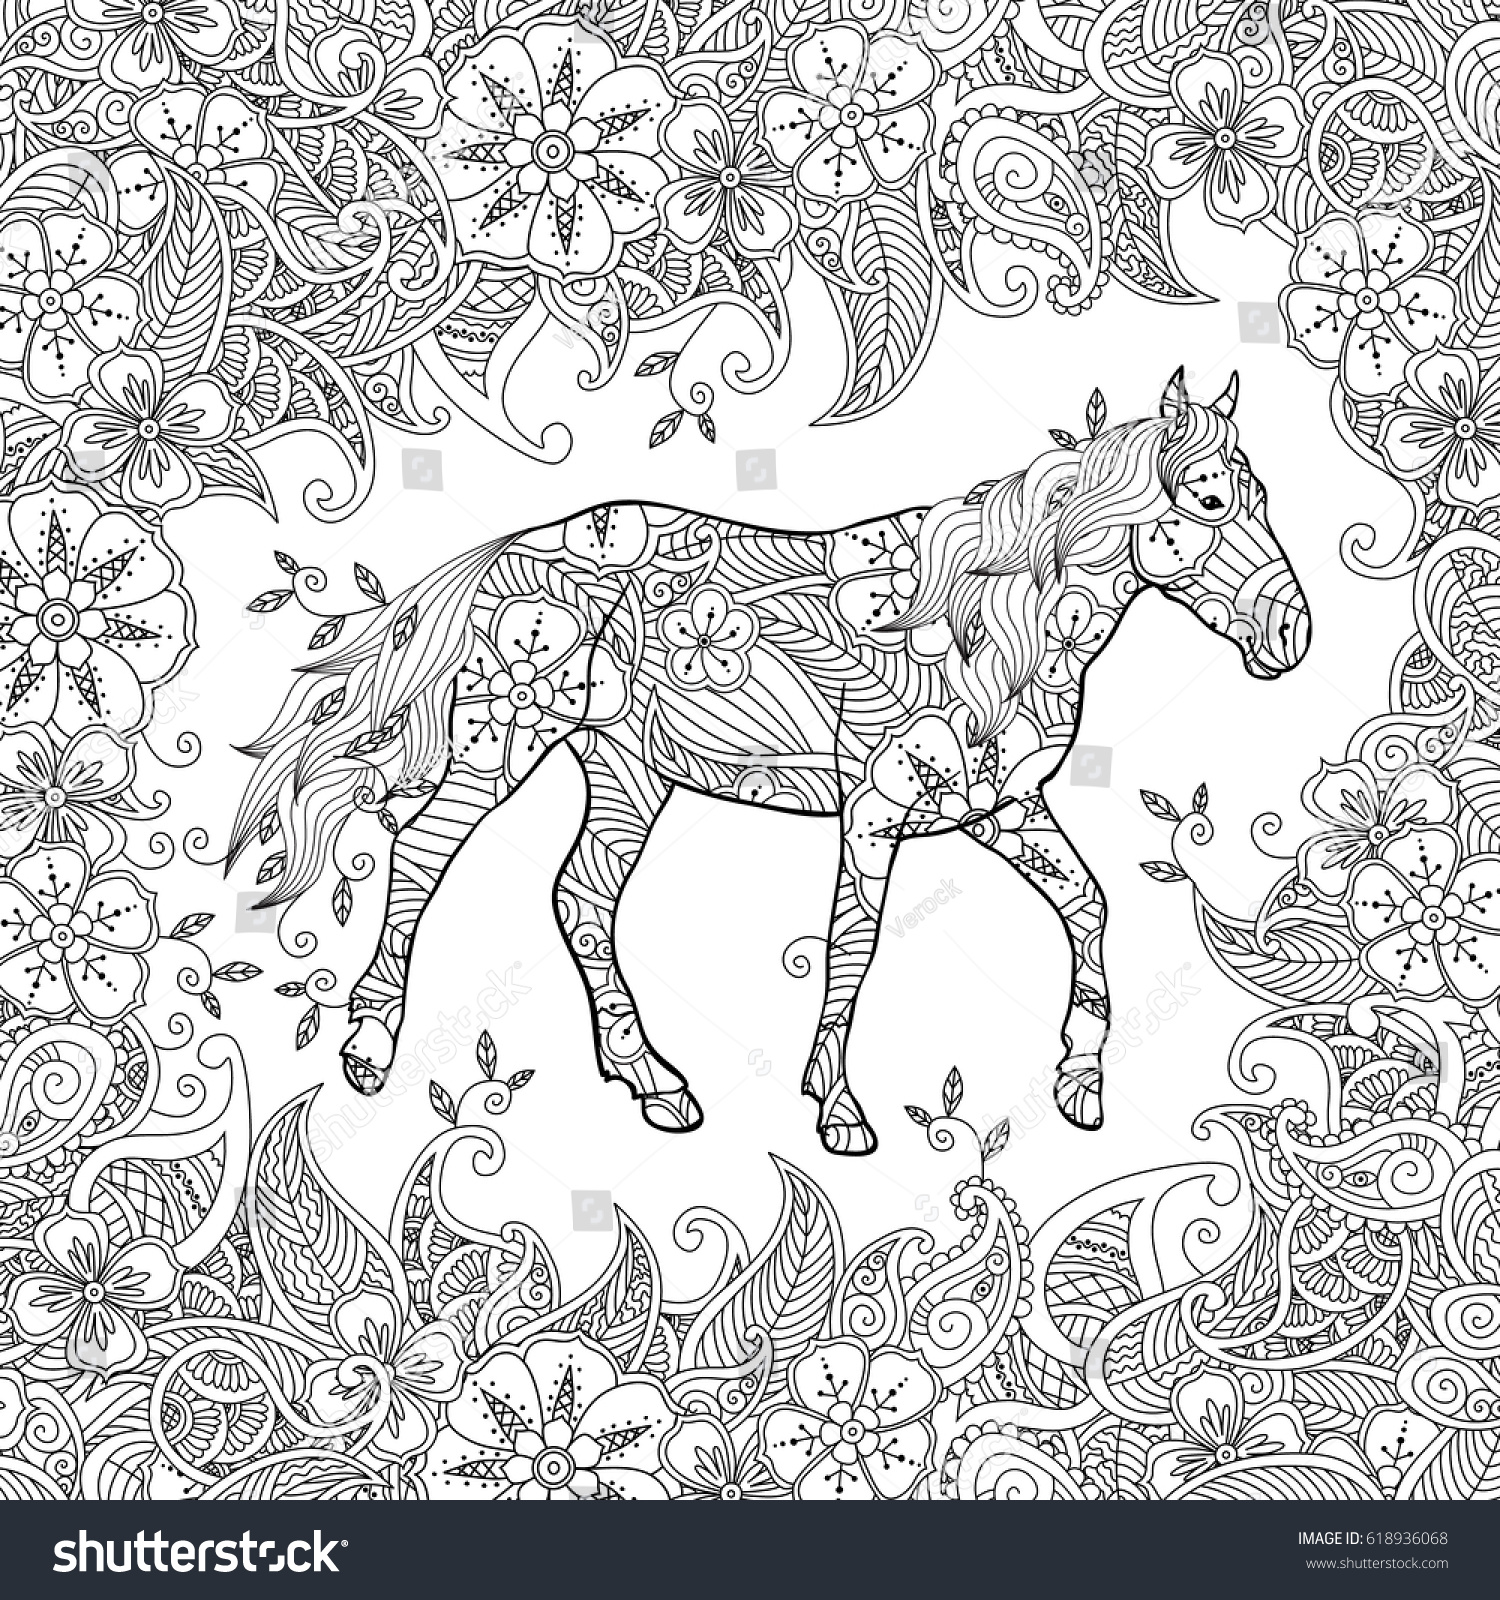 Coloring Page Zentangle Inspired Style Running Stock Illustration ...